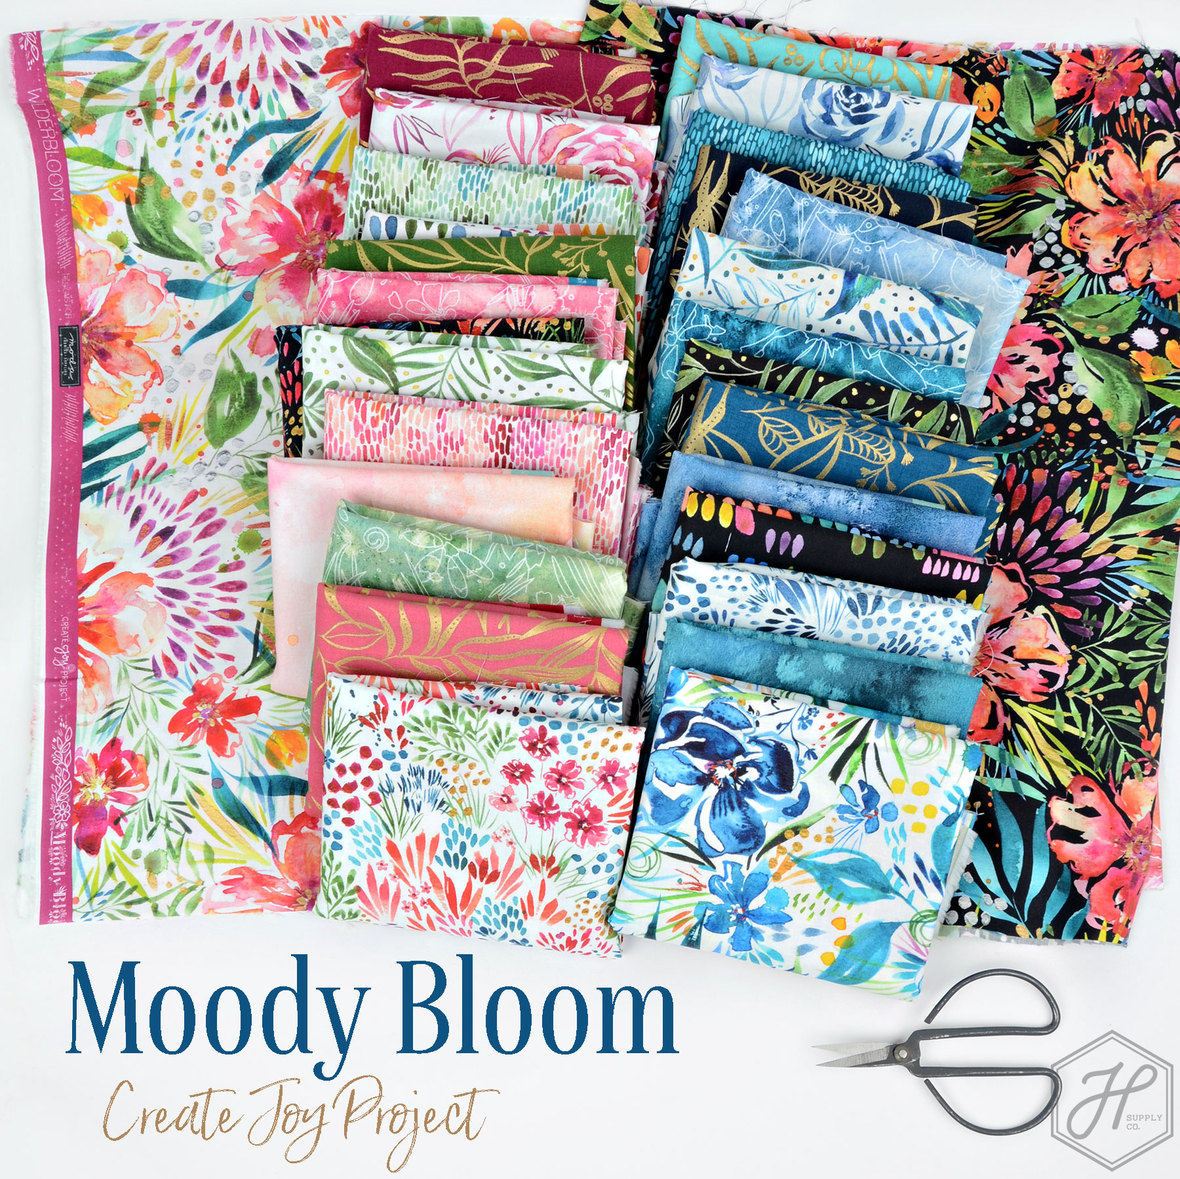 Moody-Bloom-by-Create-Joy-Project-for-Moda-fabric-at-Hawthorne-Supply-Co